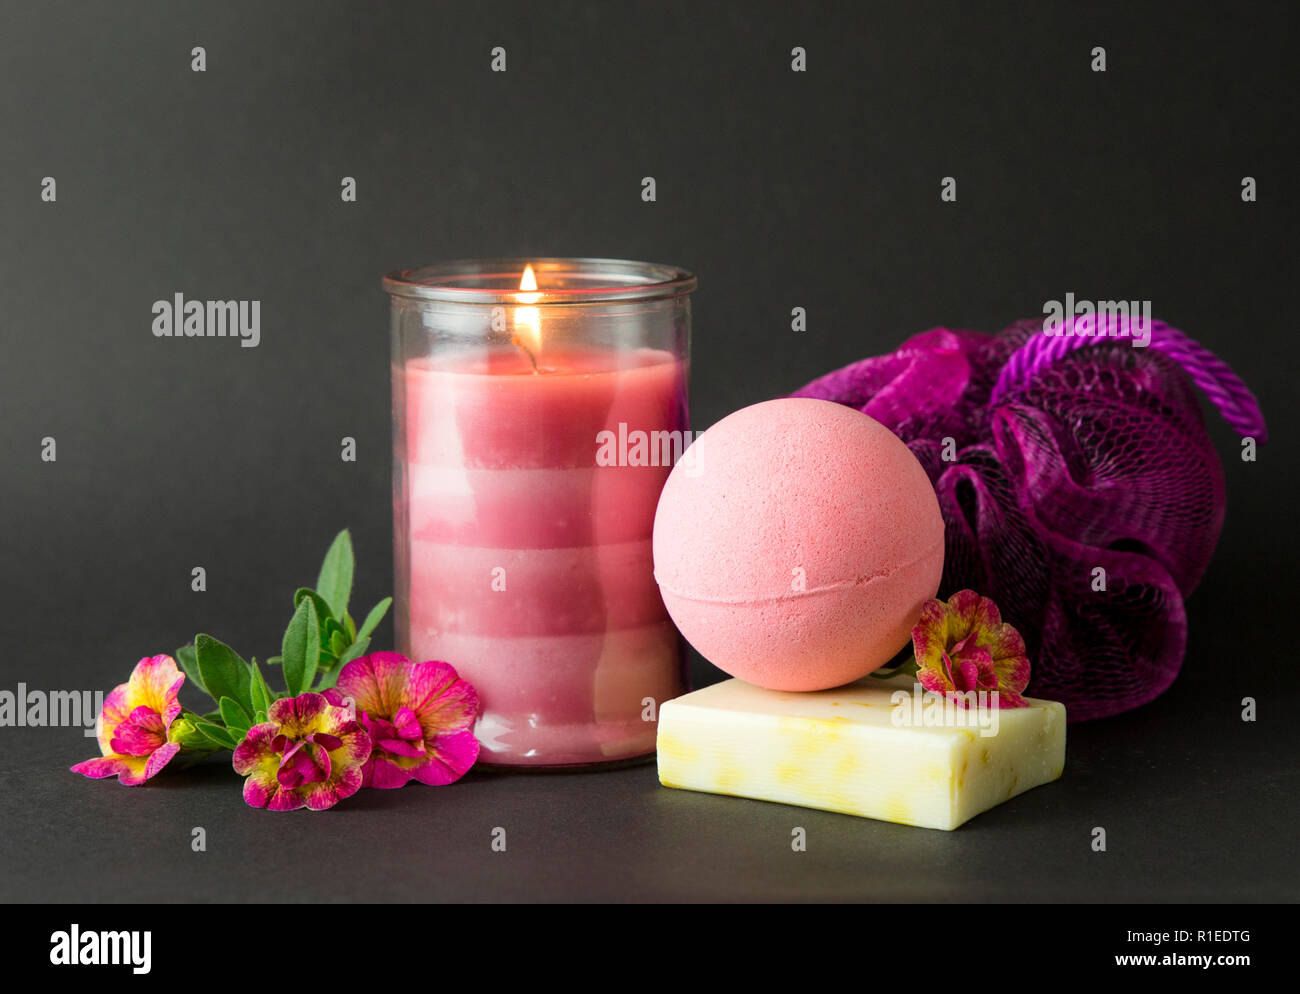 Wellness spa therapy pampering products on black background, pink candle burning, warm mood. Pink bath bomb, hand made soap, pink sponge, pink burning - Stock Image